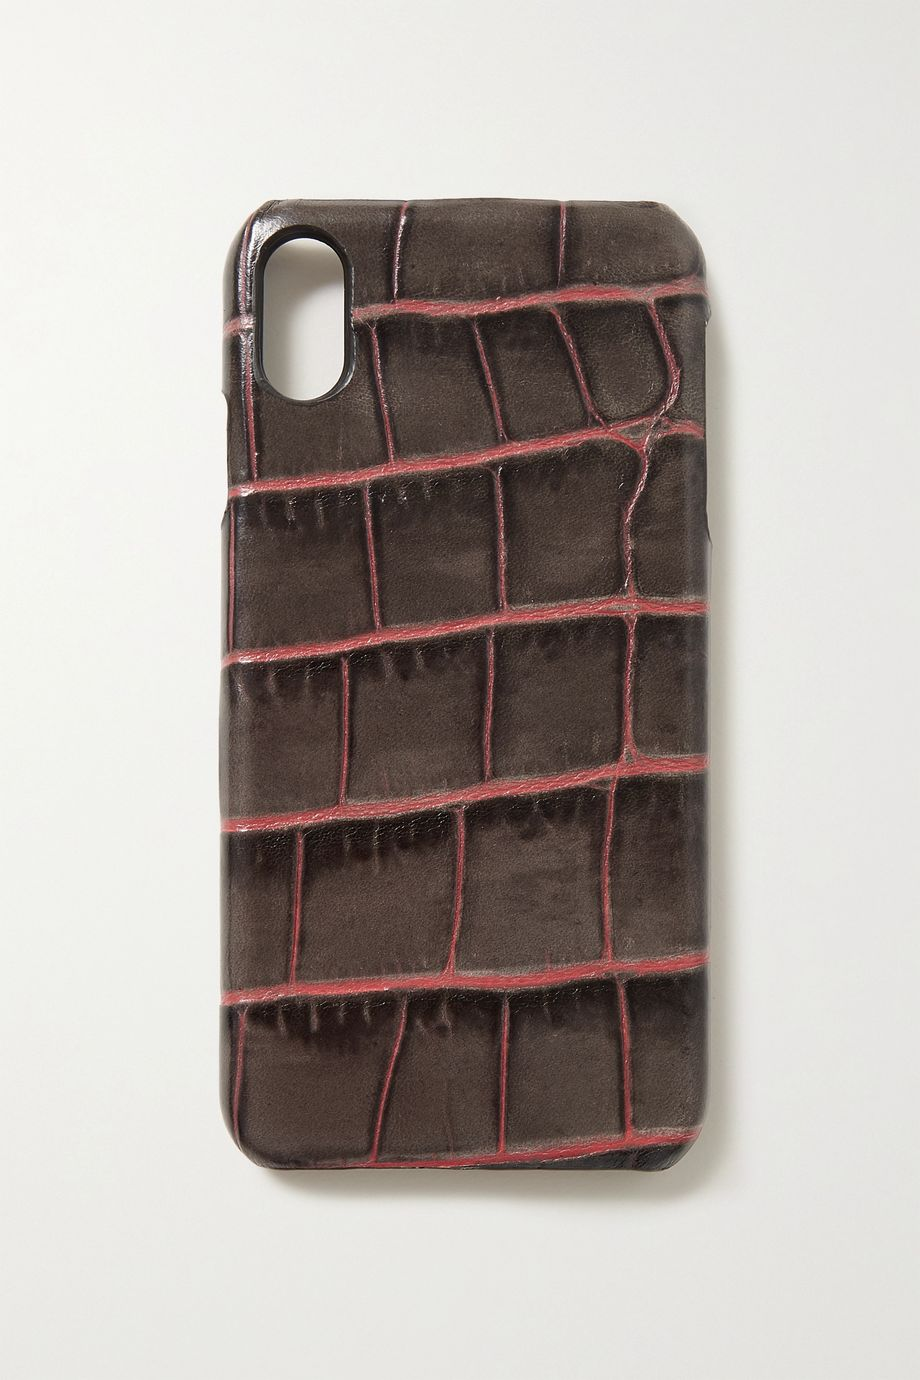 The Case Factory Croc-effect leather iPhone XS Max case